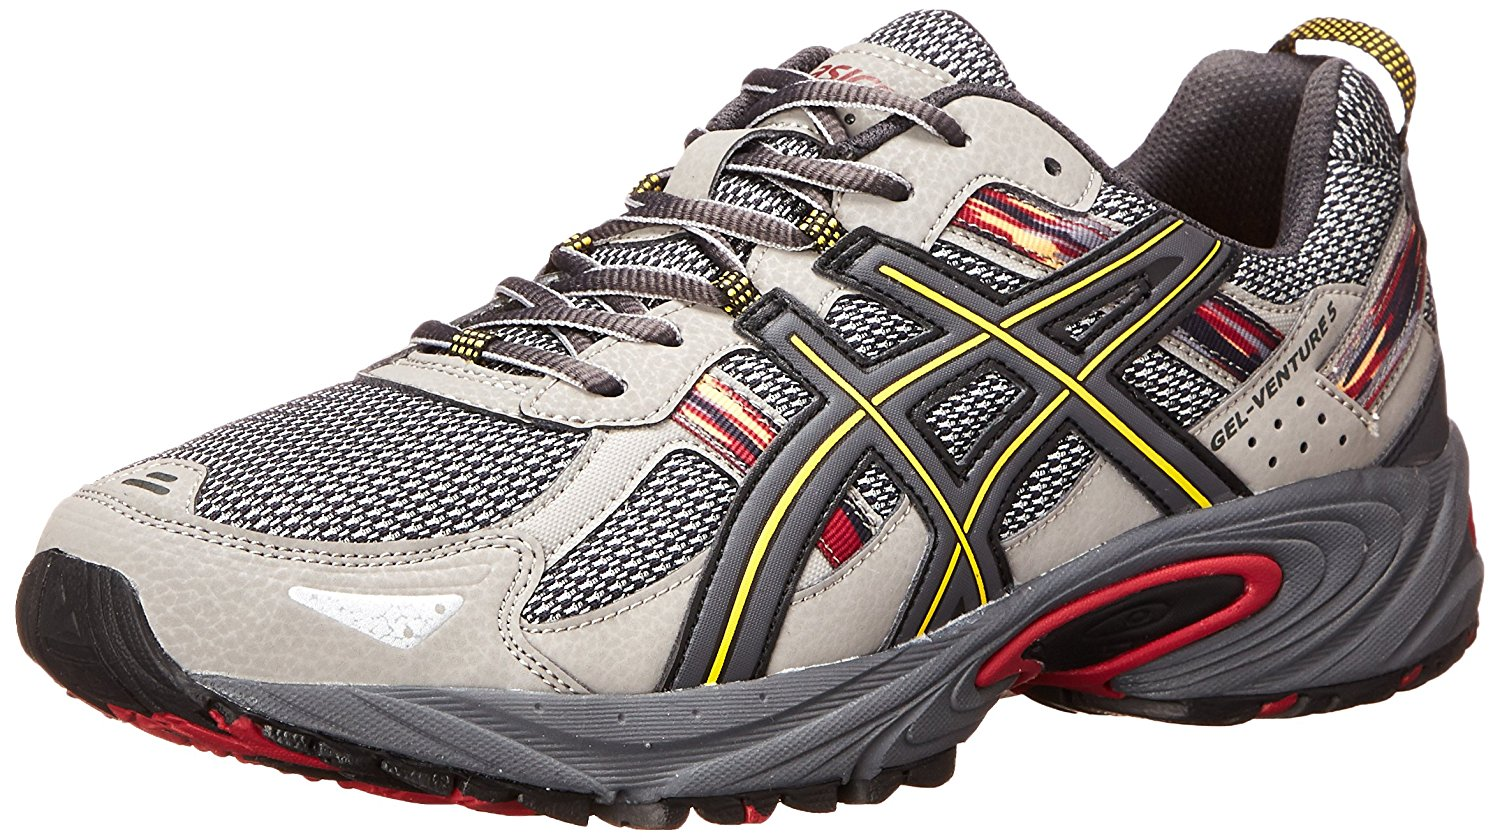 203b57f41cc Very Goods | Amazon.com | ASICS Men's Gel Venture 5 Running Shoe ...